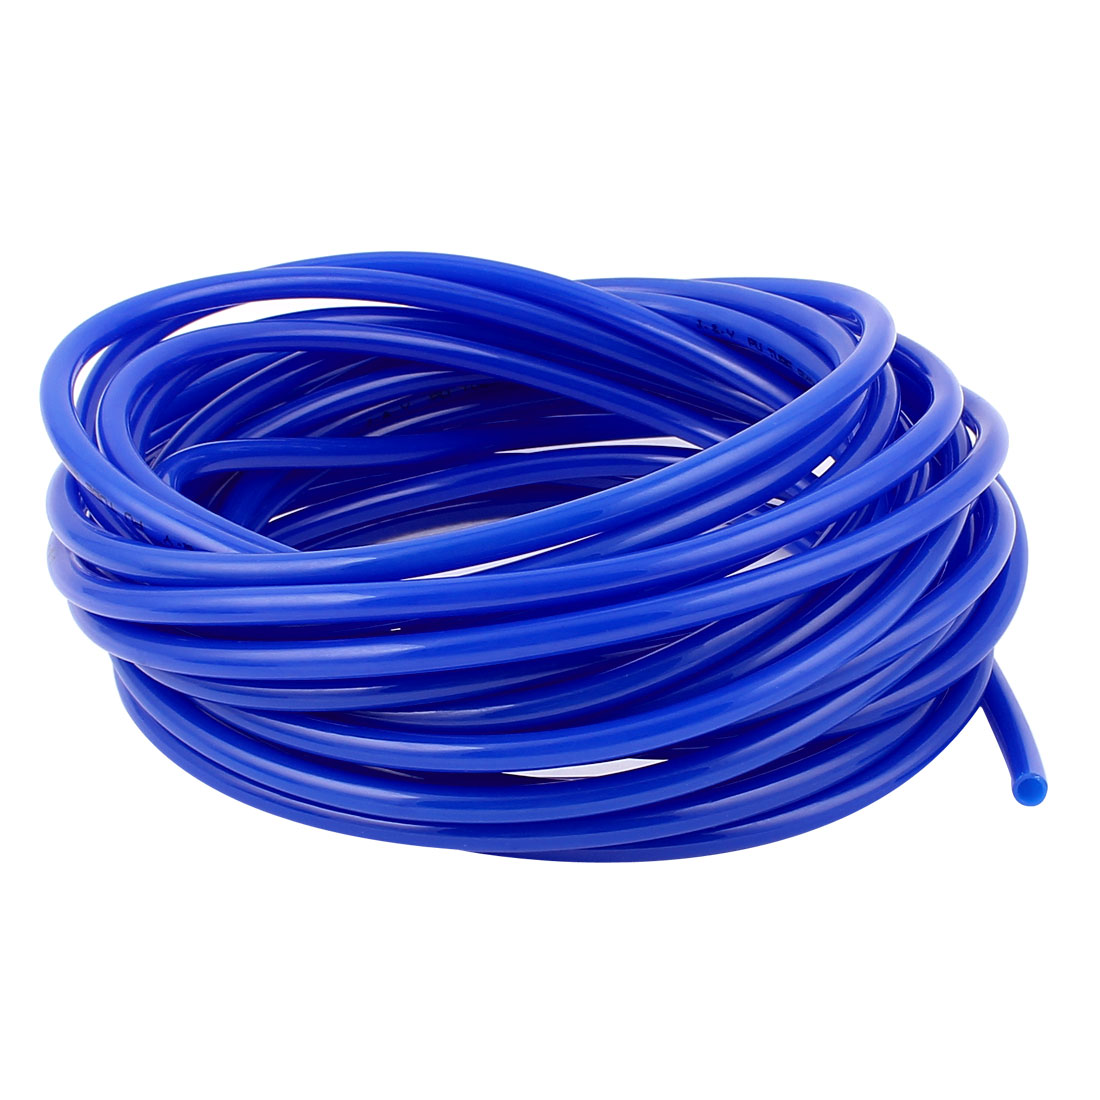 39Ft Long 8mm x 5mm Dia Pneumatic Polyurethane PU Air Tube Tubing Pipe Hose Blue